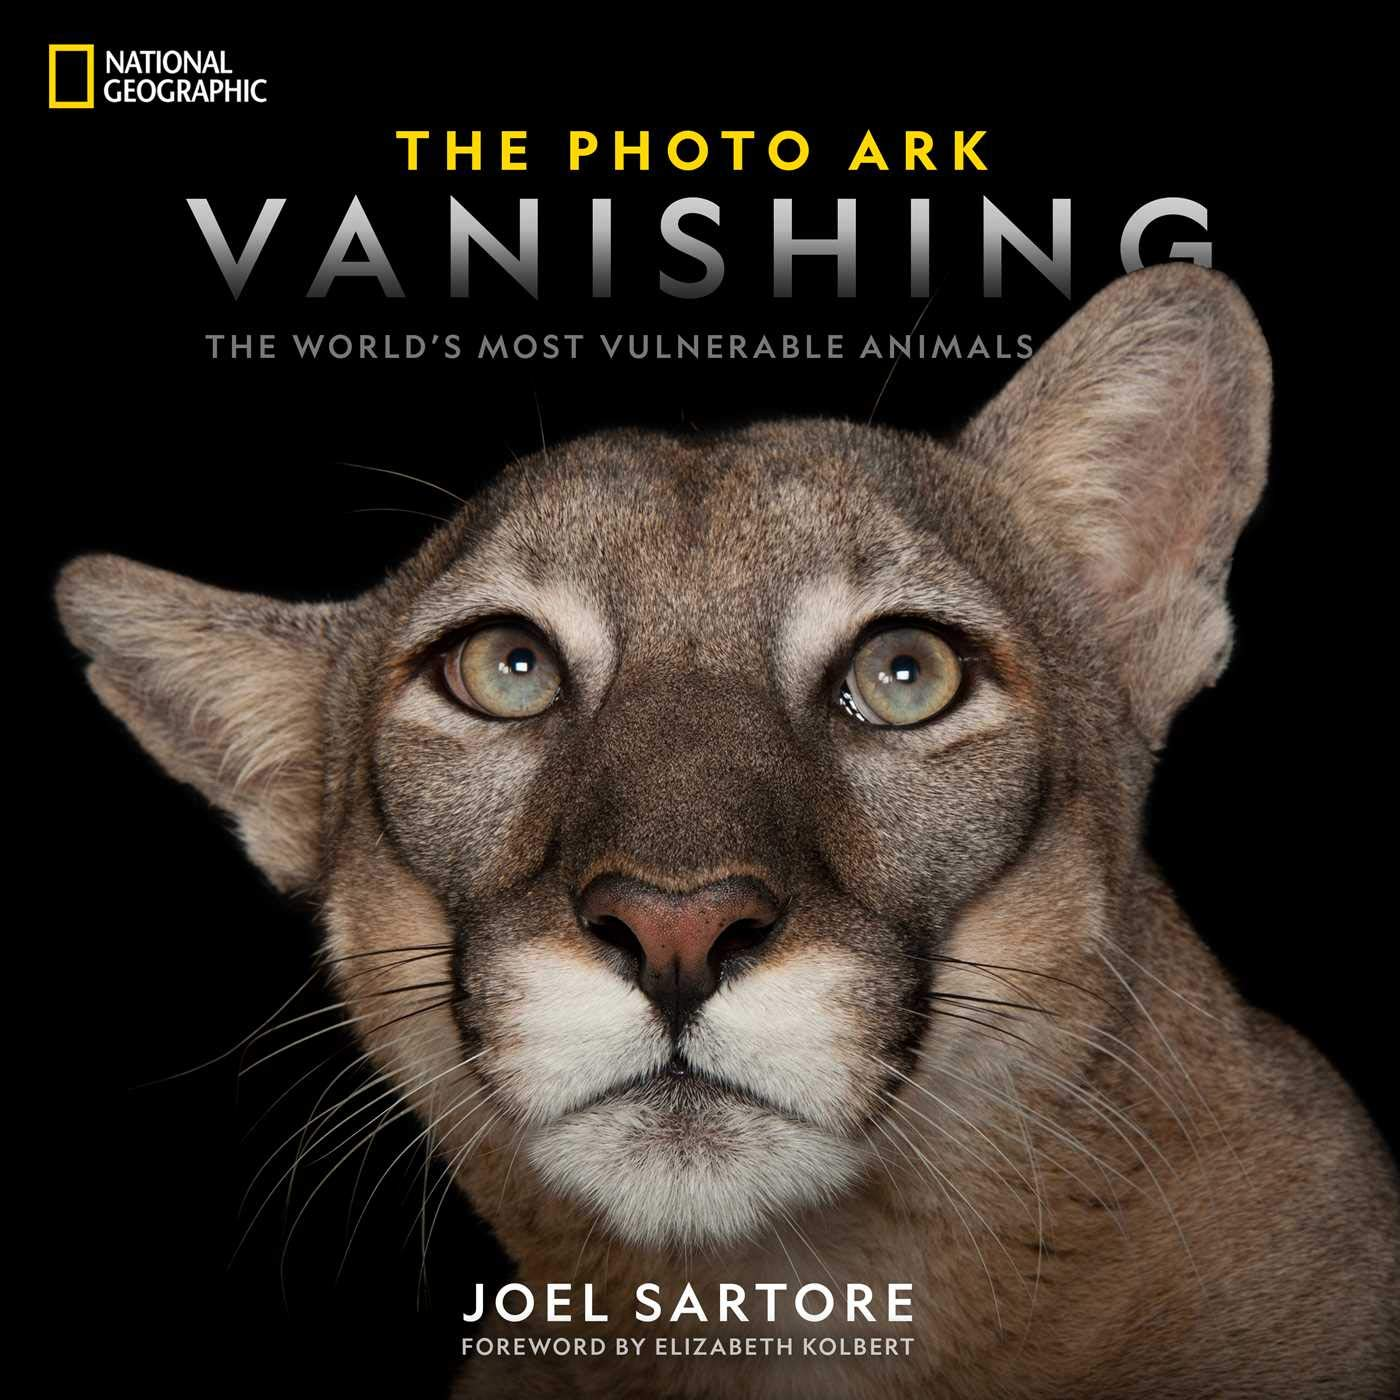 The Photo Ark: Vanishing By Joel Sartore National Geographic, 2019